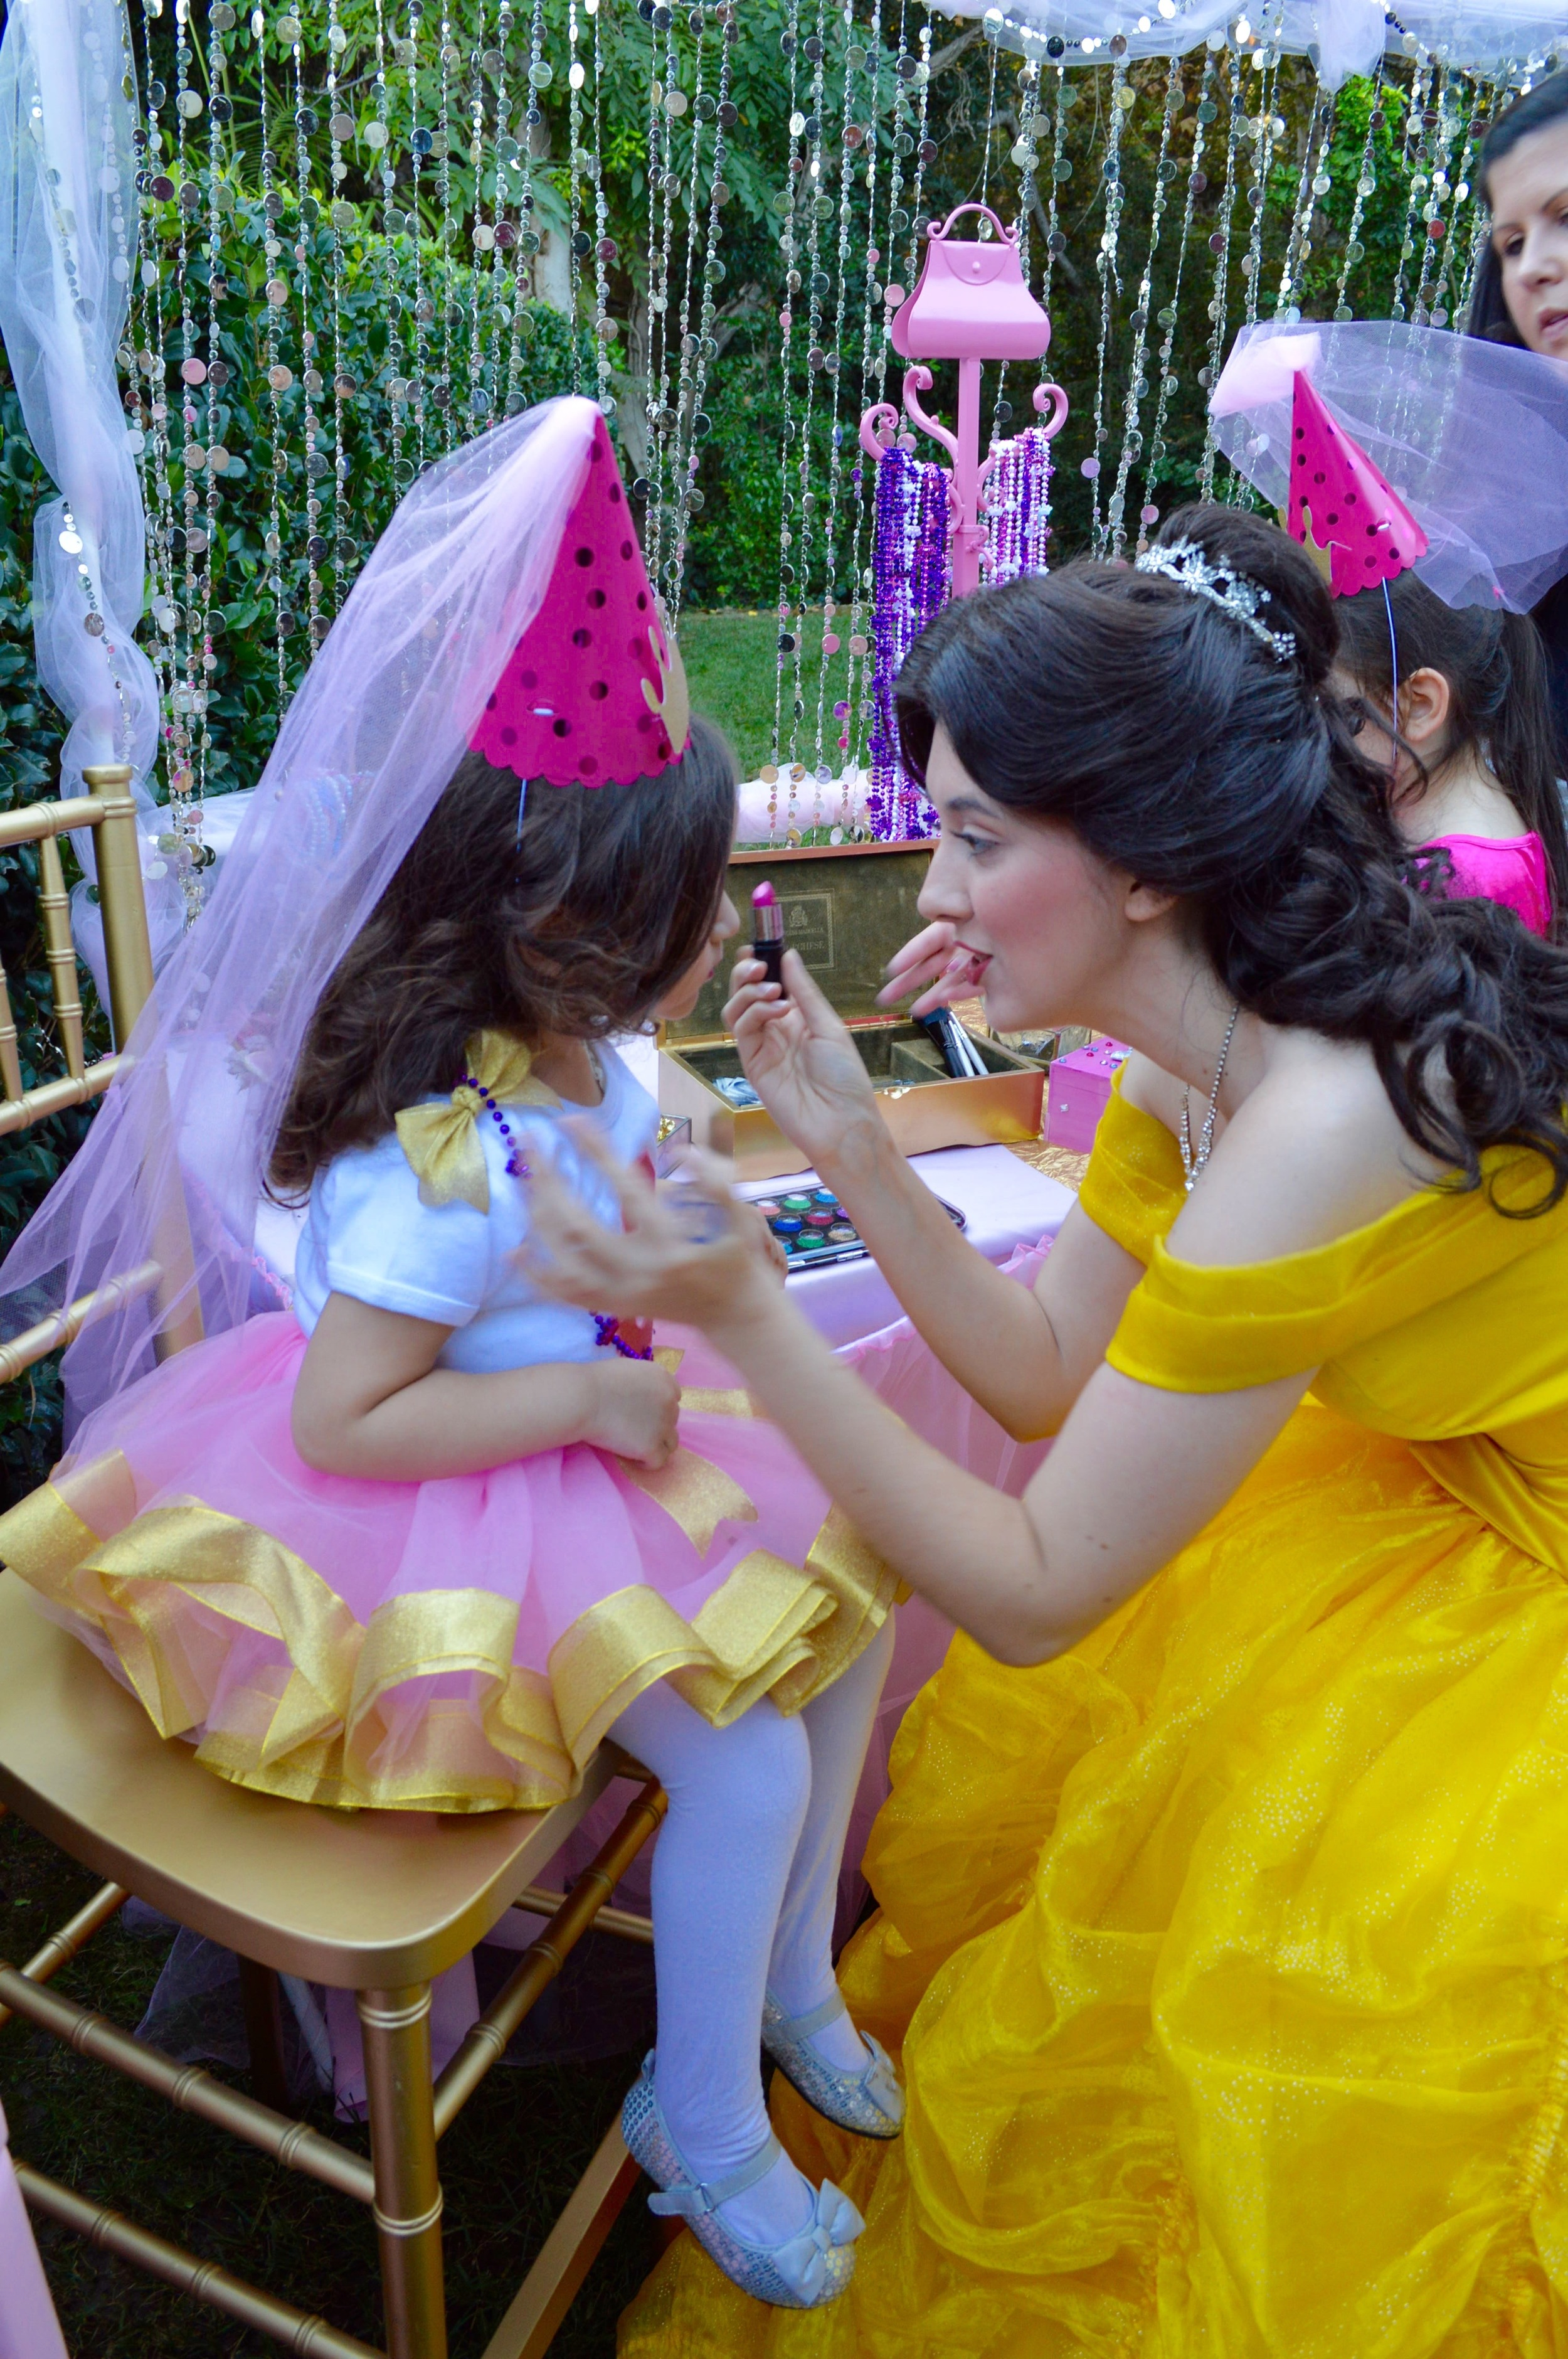 Belle stopped by for an hour to help the ladies with their makeup. Belle provided by  Wishing Well Entertainment .